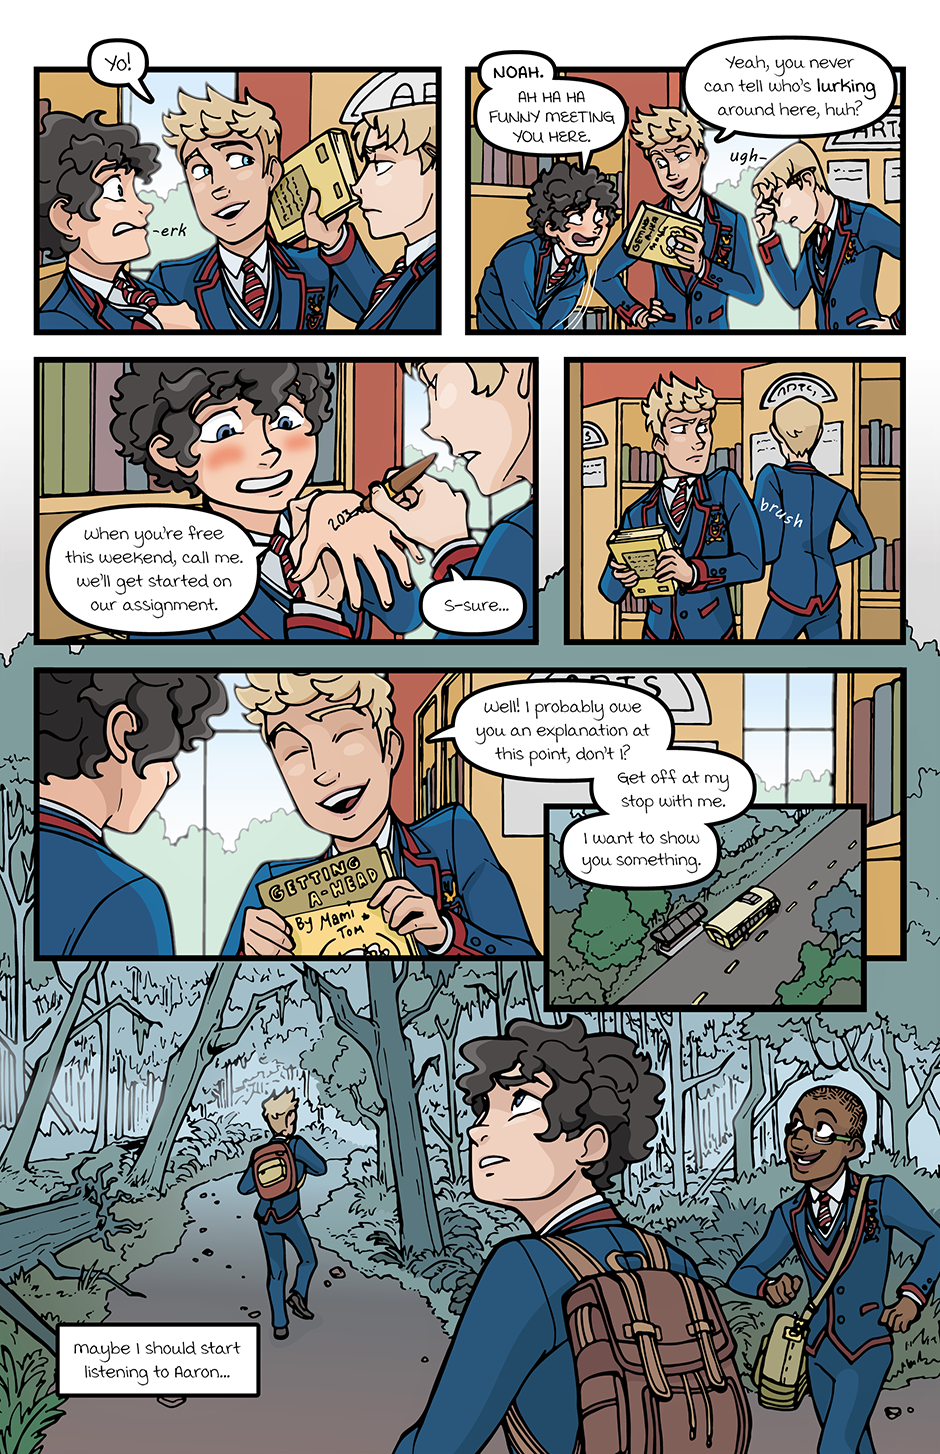 Ch06-P12_forSS.png